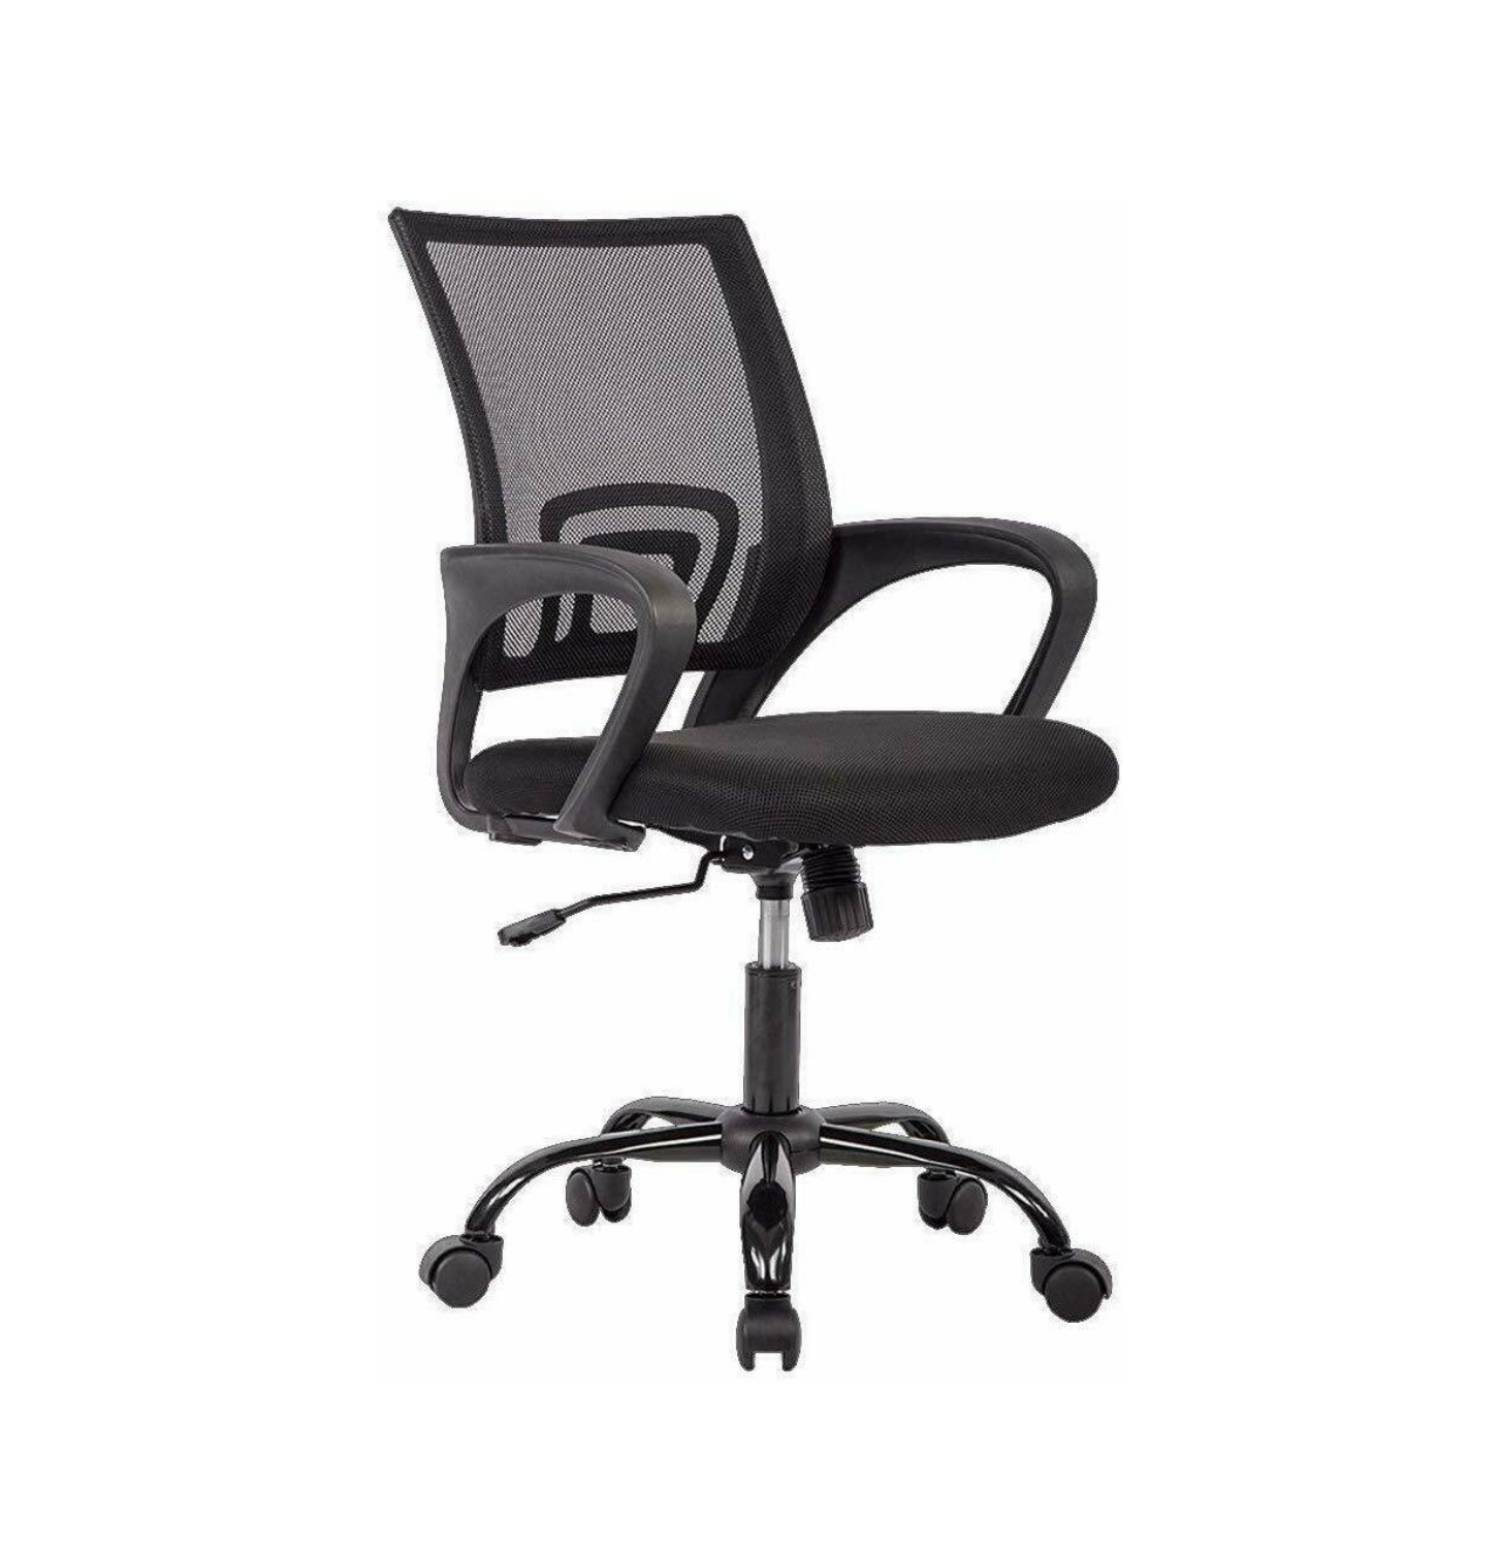 [US Direct] Art Life Mid Back Office Chair-Ergonomic Home Desk Chair with Lumbar Support-Mordern Mesh Computer Chair-Adjustable Rolling Swivel Chair (Red)